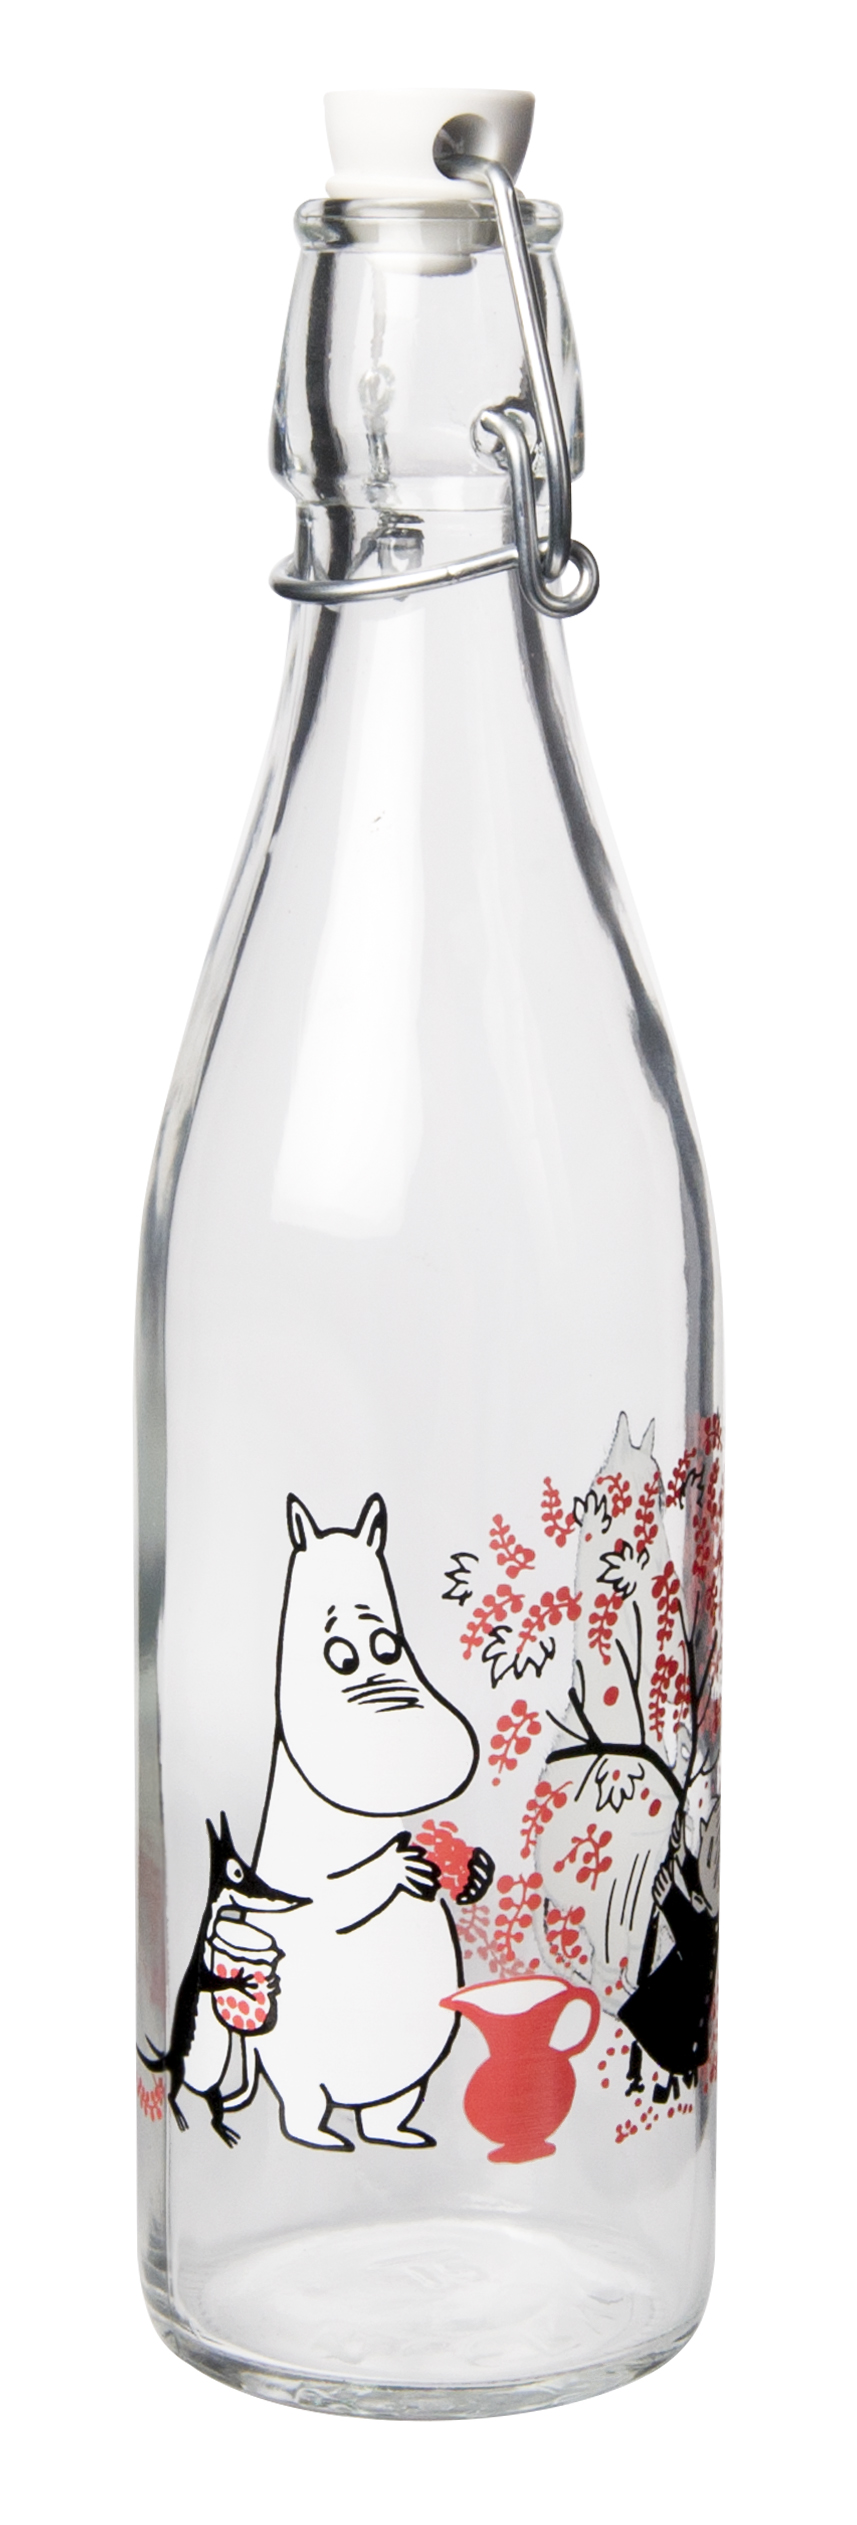 Muurla Moomin Berries glass bottle 0,5 L